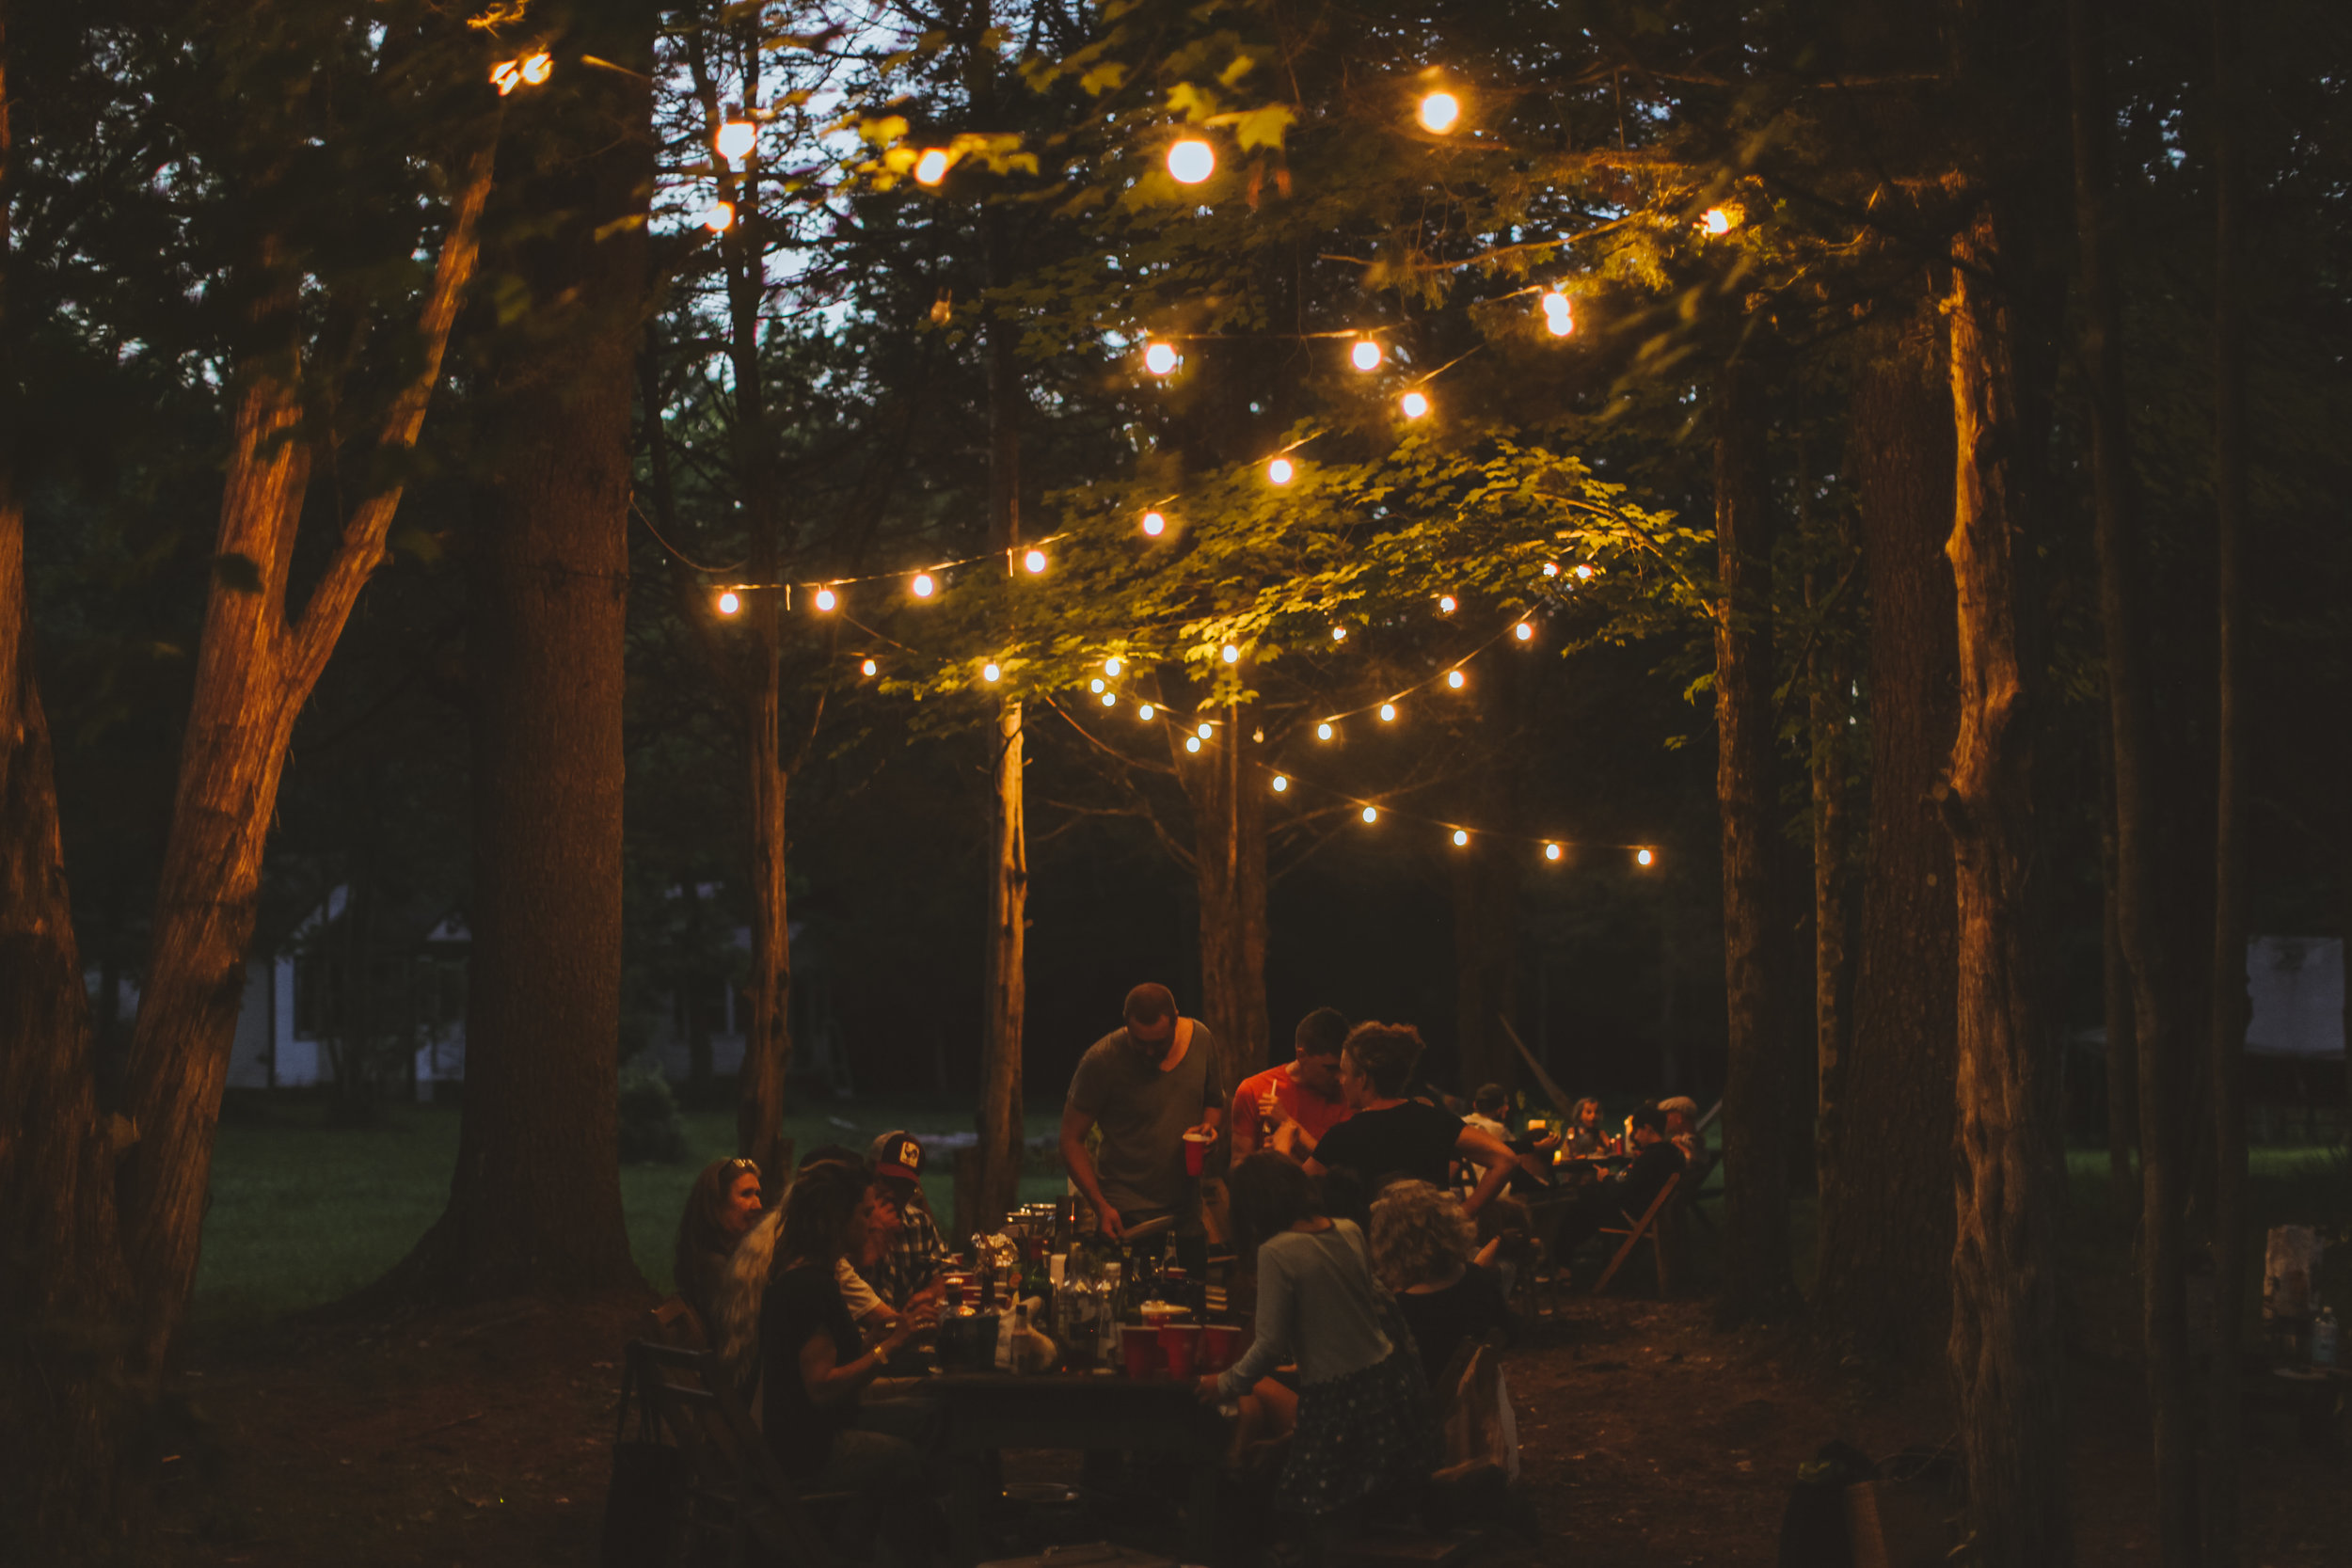 Evening gathering underneath beautiful string lights.   Photo Credit: Peter B Crosby